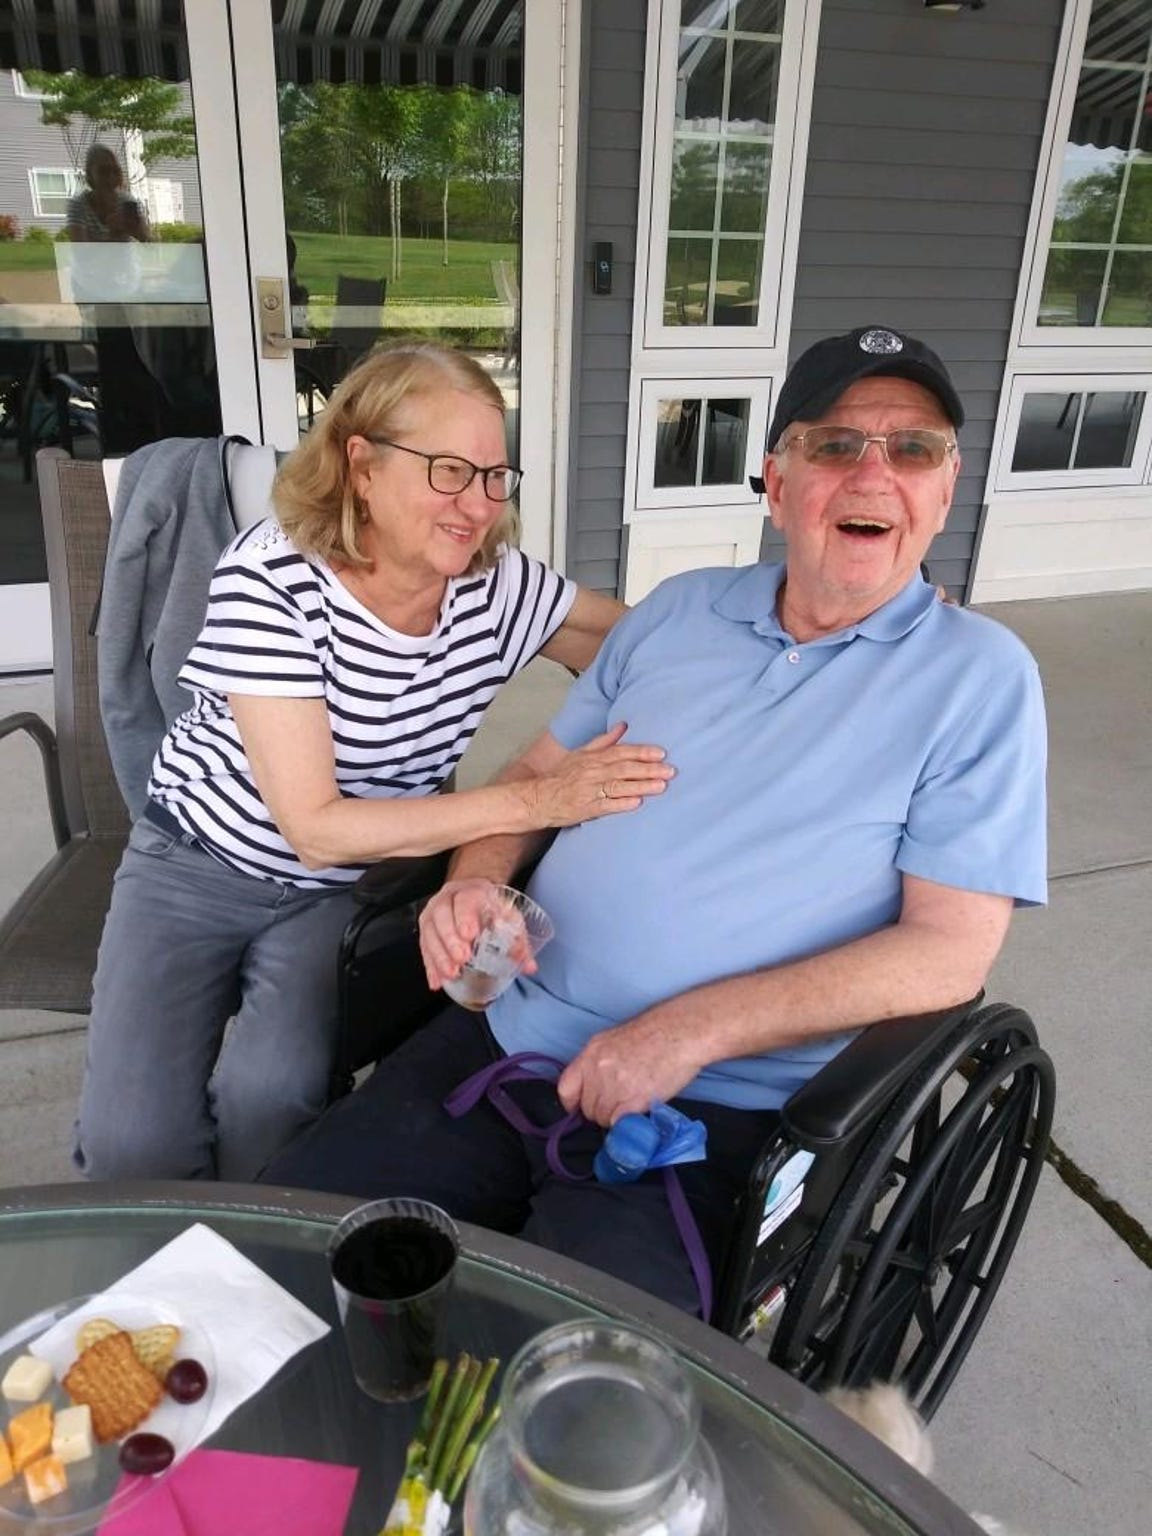 Kathleen Farrell-Willoughby and her husband, Henry, are shown last summer. Henry, who has Alzheimer's disease, lives in a long-term care facility in Monmouth County. So far, the facility has been free of COVID-19 cases.